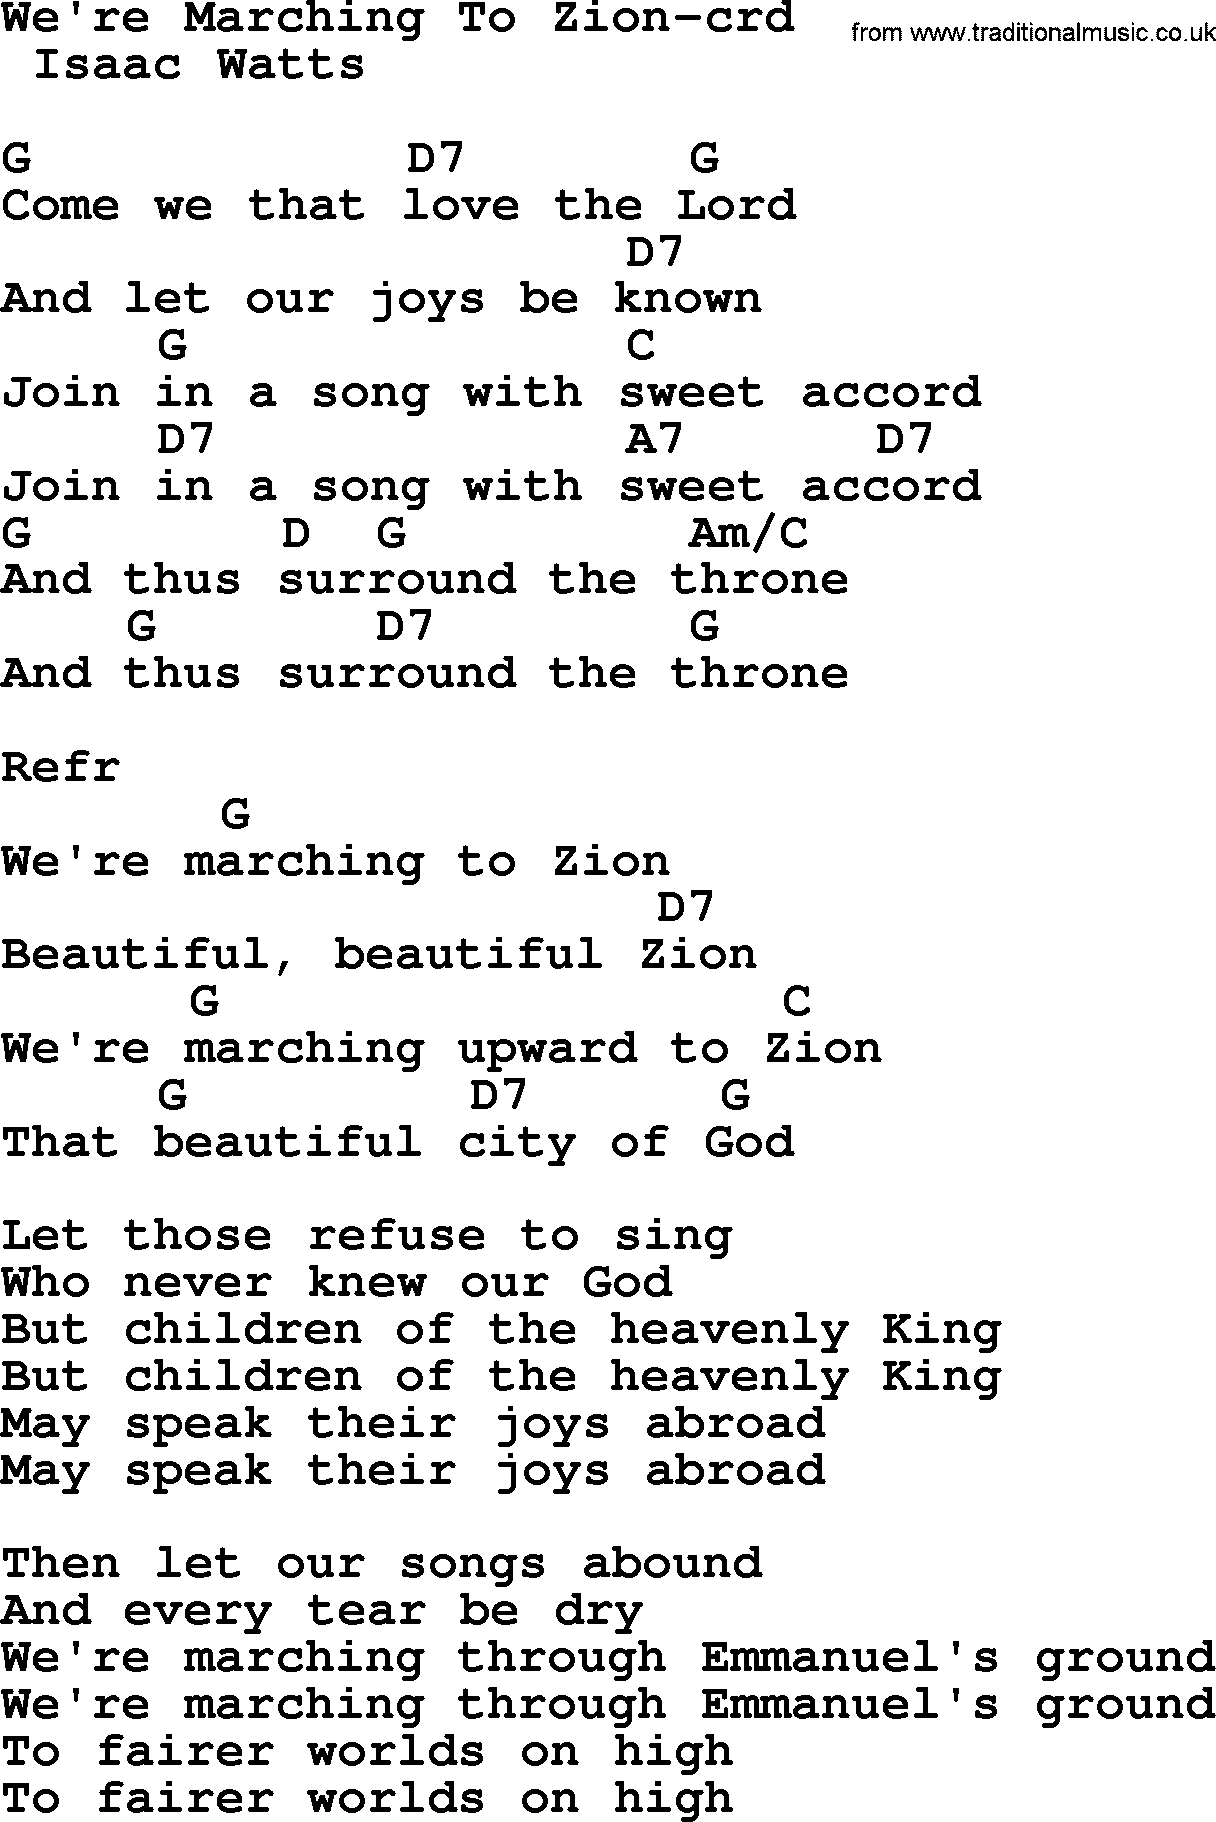 Top 500 hymn were marching to zion lyrics chords and pdf top 500 hymn were marching to zion lyrics and chords hexwebz Images